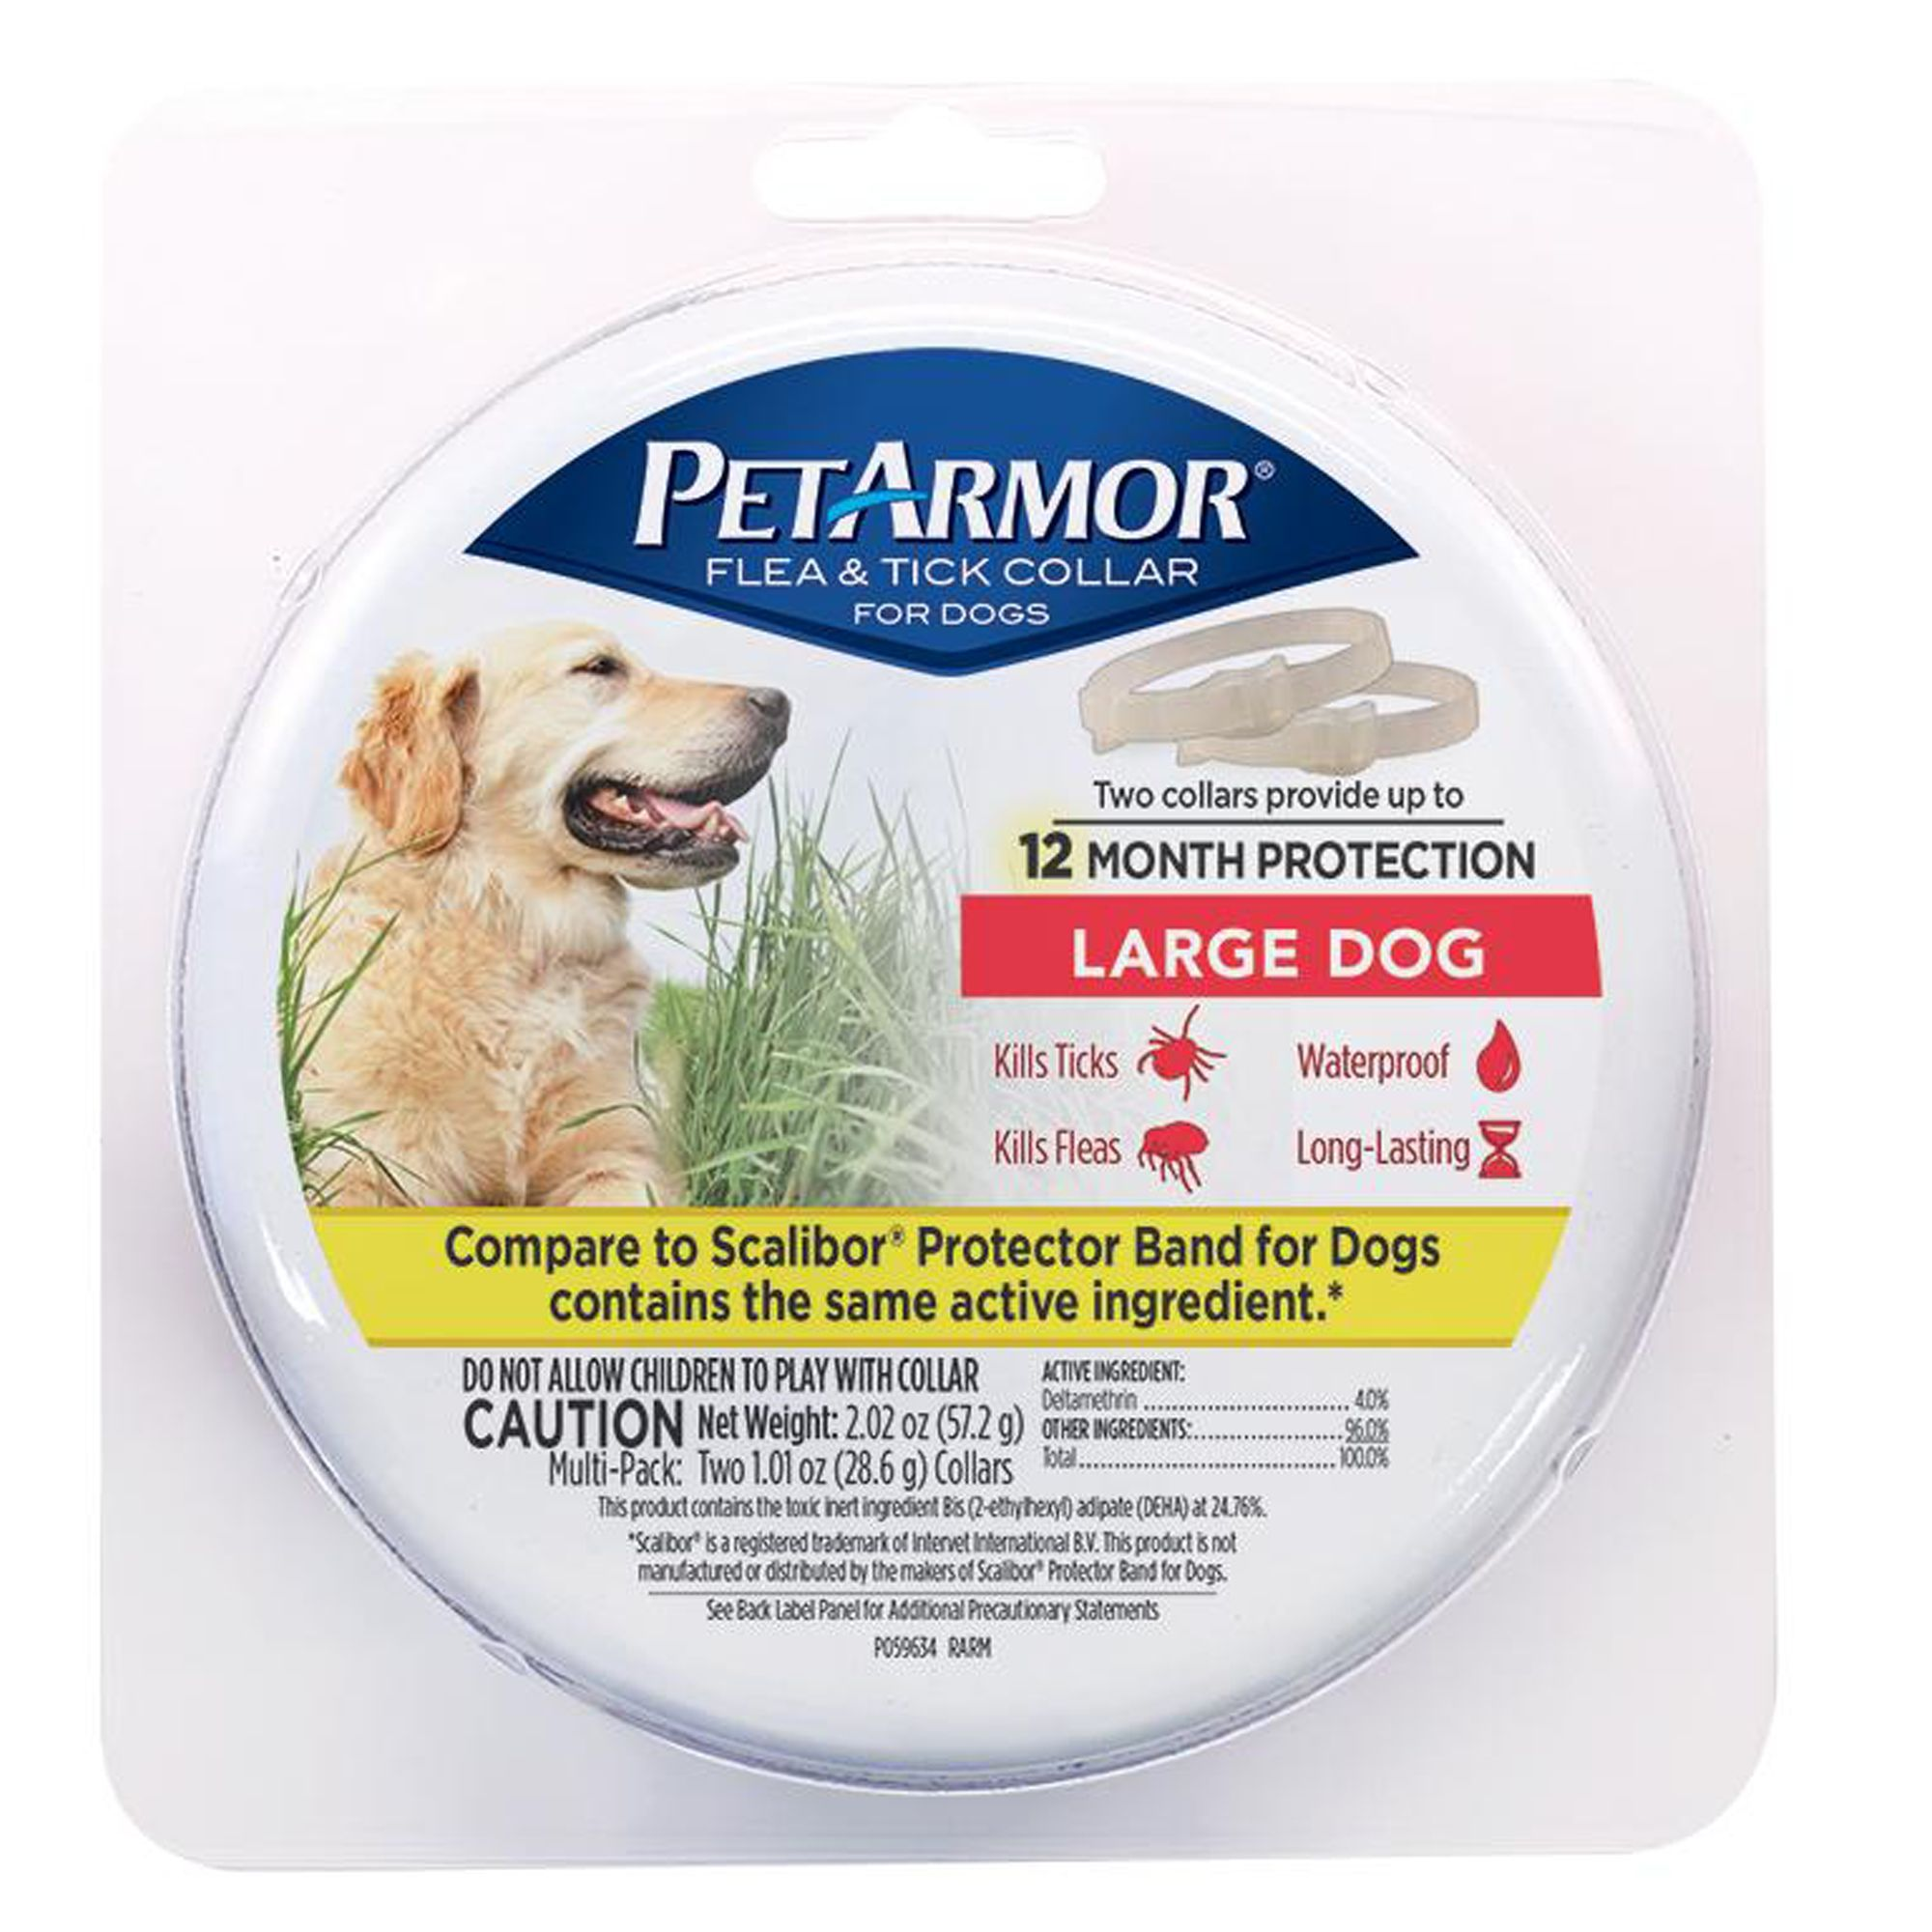 Petarmor Flea And Tick Collar For Dogs 2 Count Size Large Blue